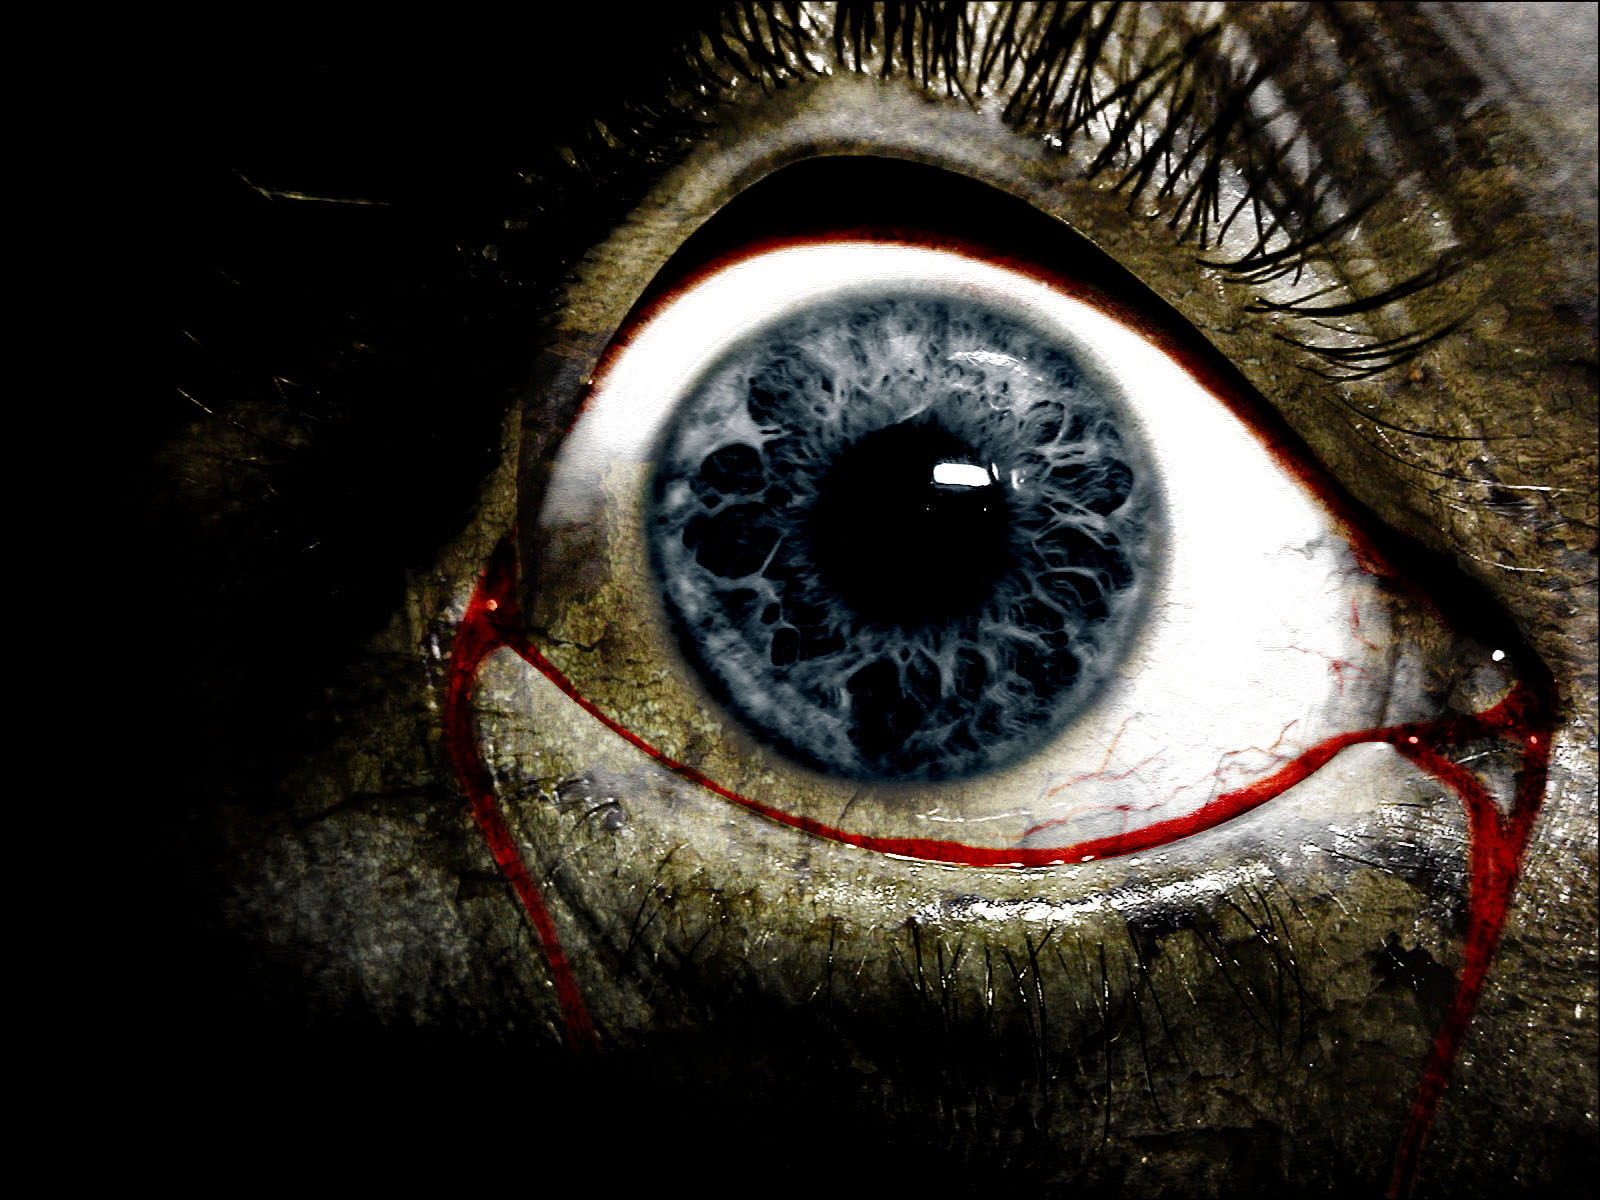 Scary eye photography backgrounds on this scary wallpaper backgrounds